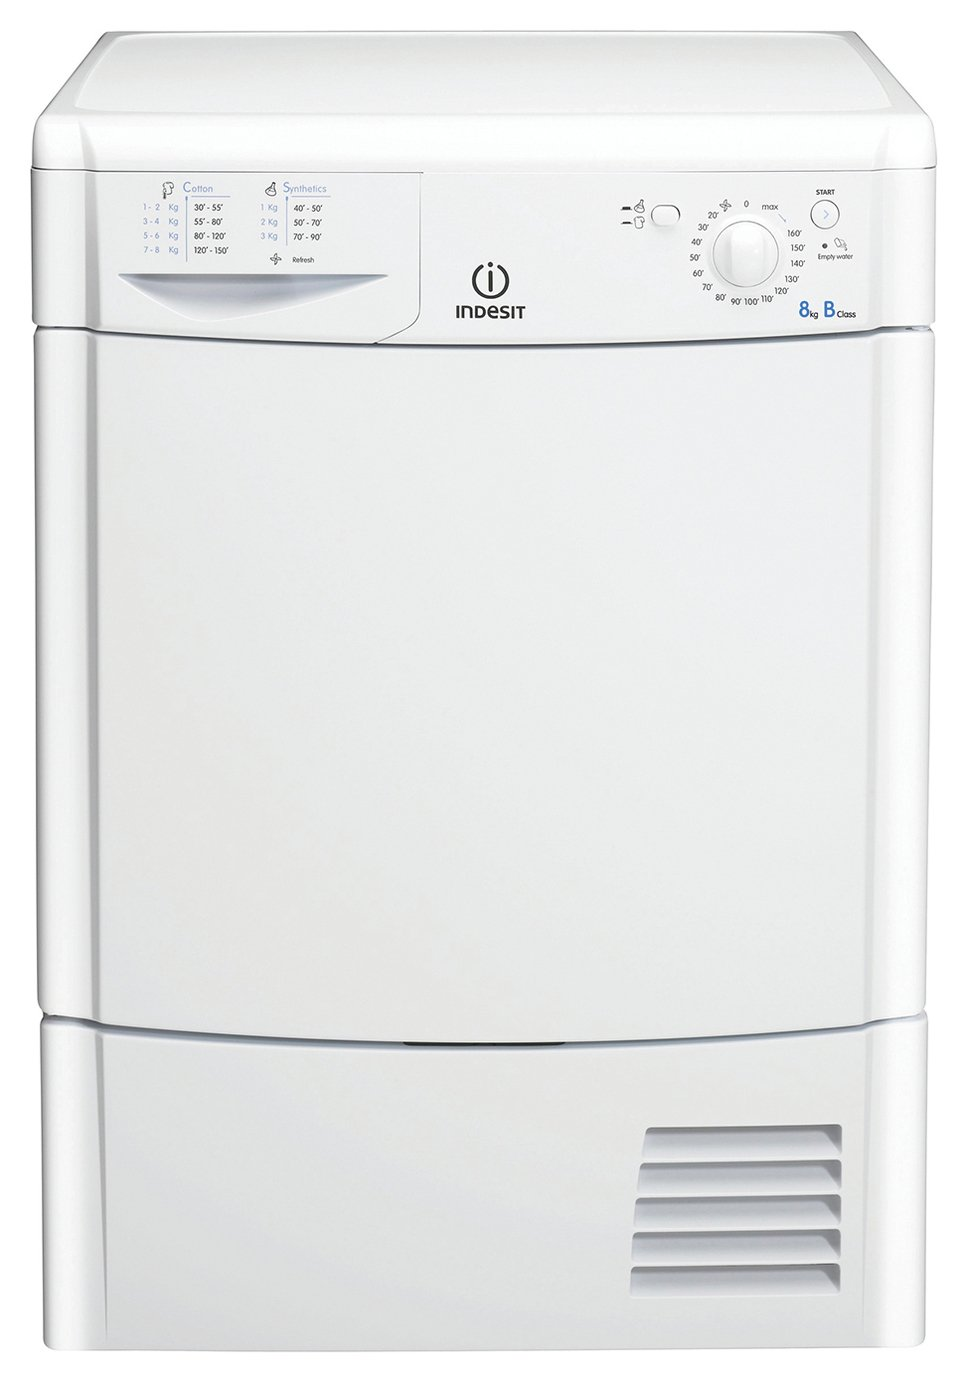 indesit-idc8t3b-8kg-condenser-tumble-dryer-white